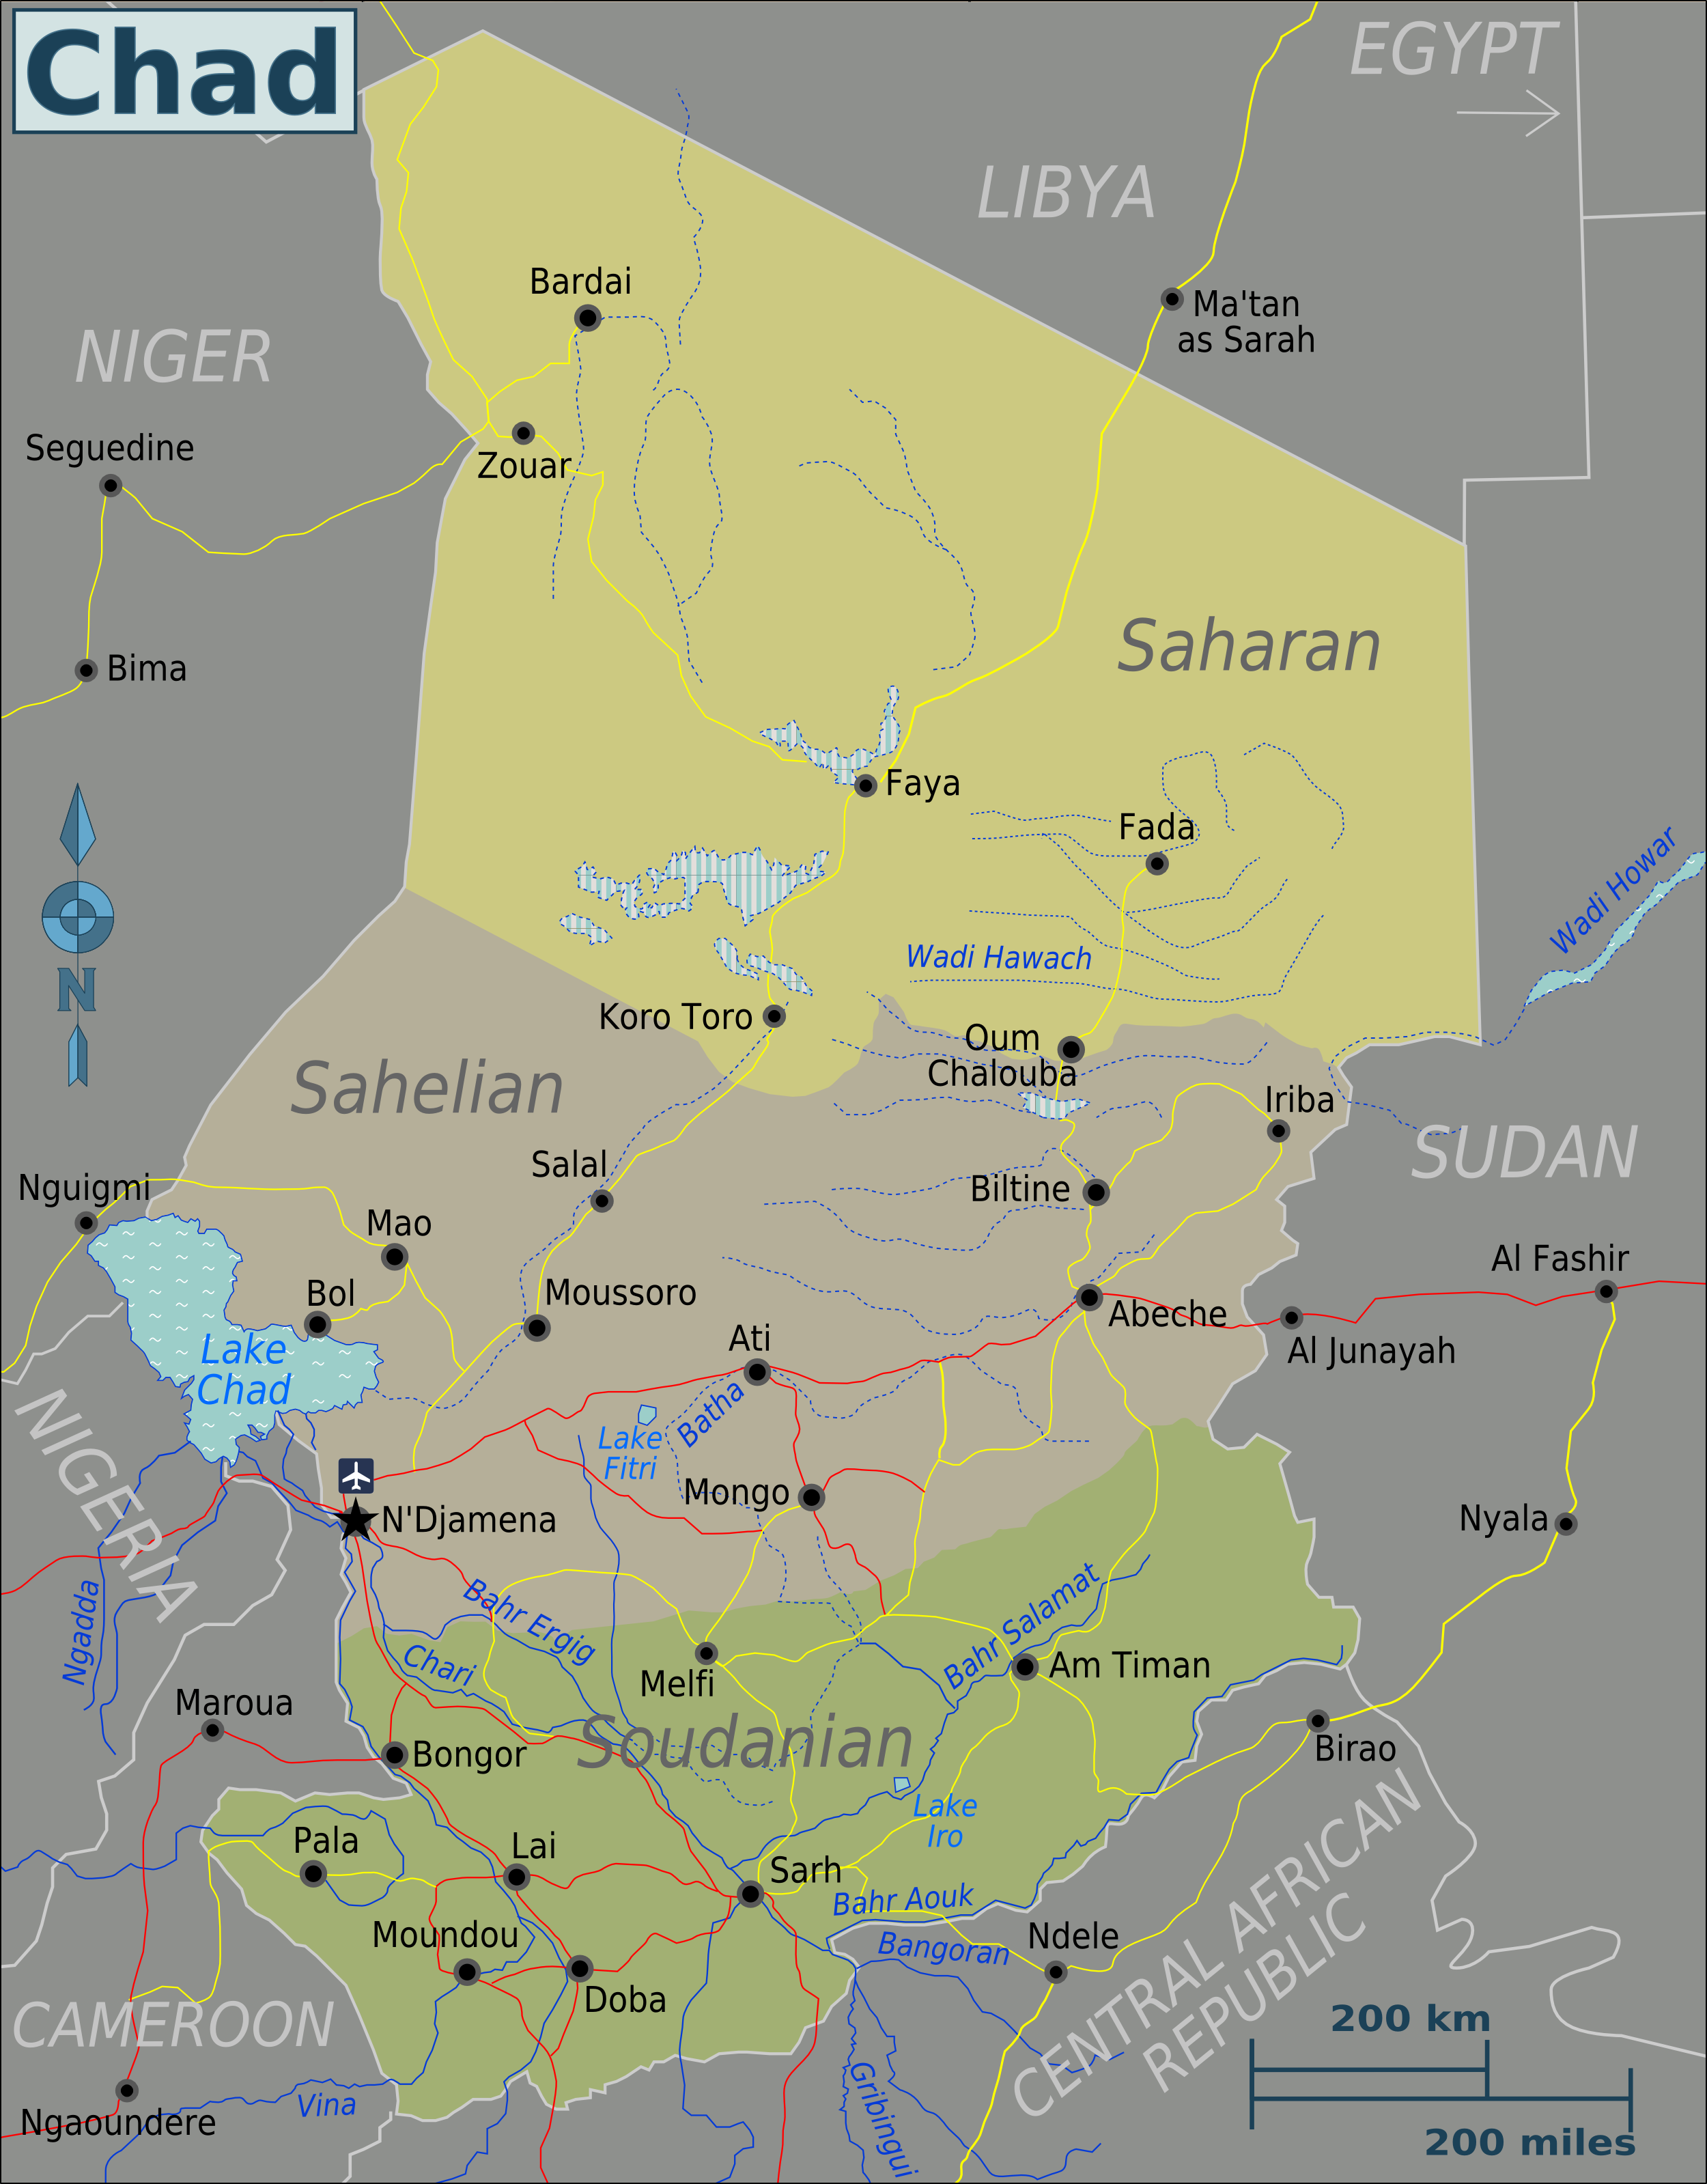 FileChad Regions Mappng Wikimedia Commons - Chad map